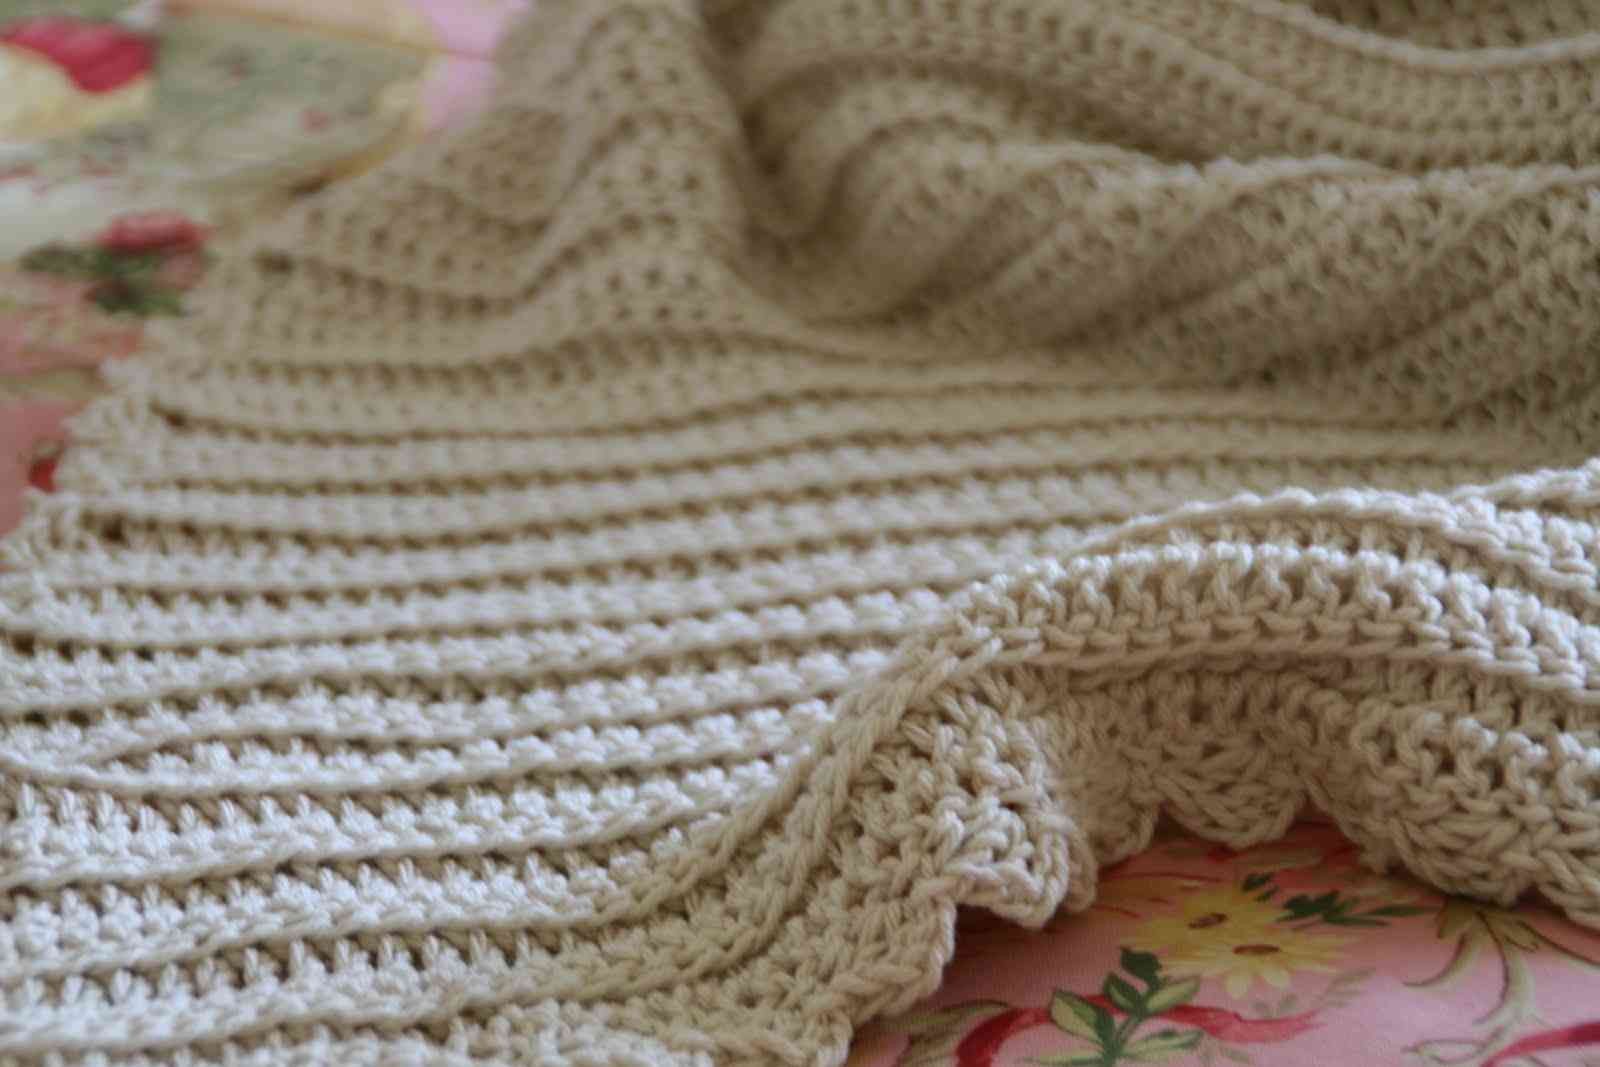 Awesome 15 Most Popular Free Crochet Baby Blanket Patterns Baby Blankets to Crochet Of Amazing 46 Images Baby Blankets to Crochet